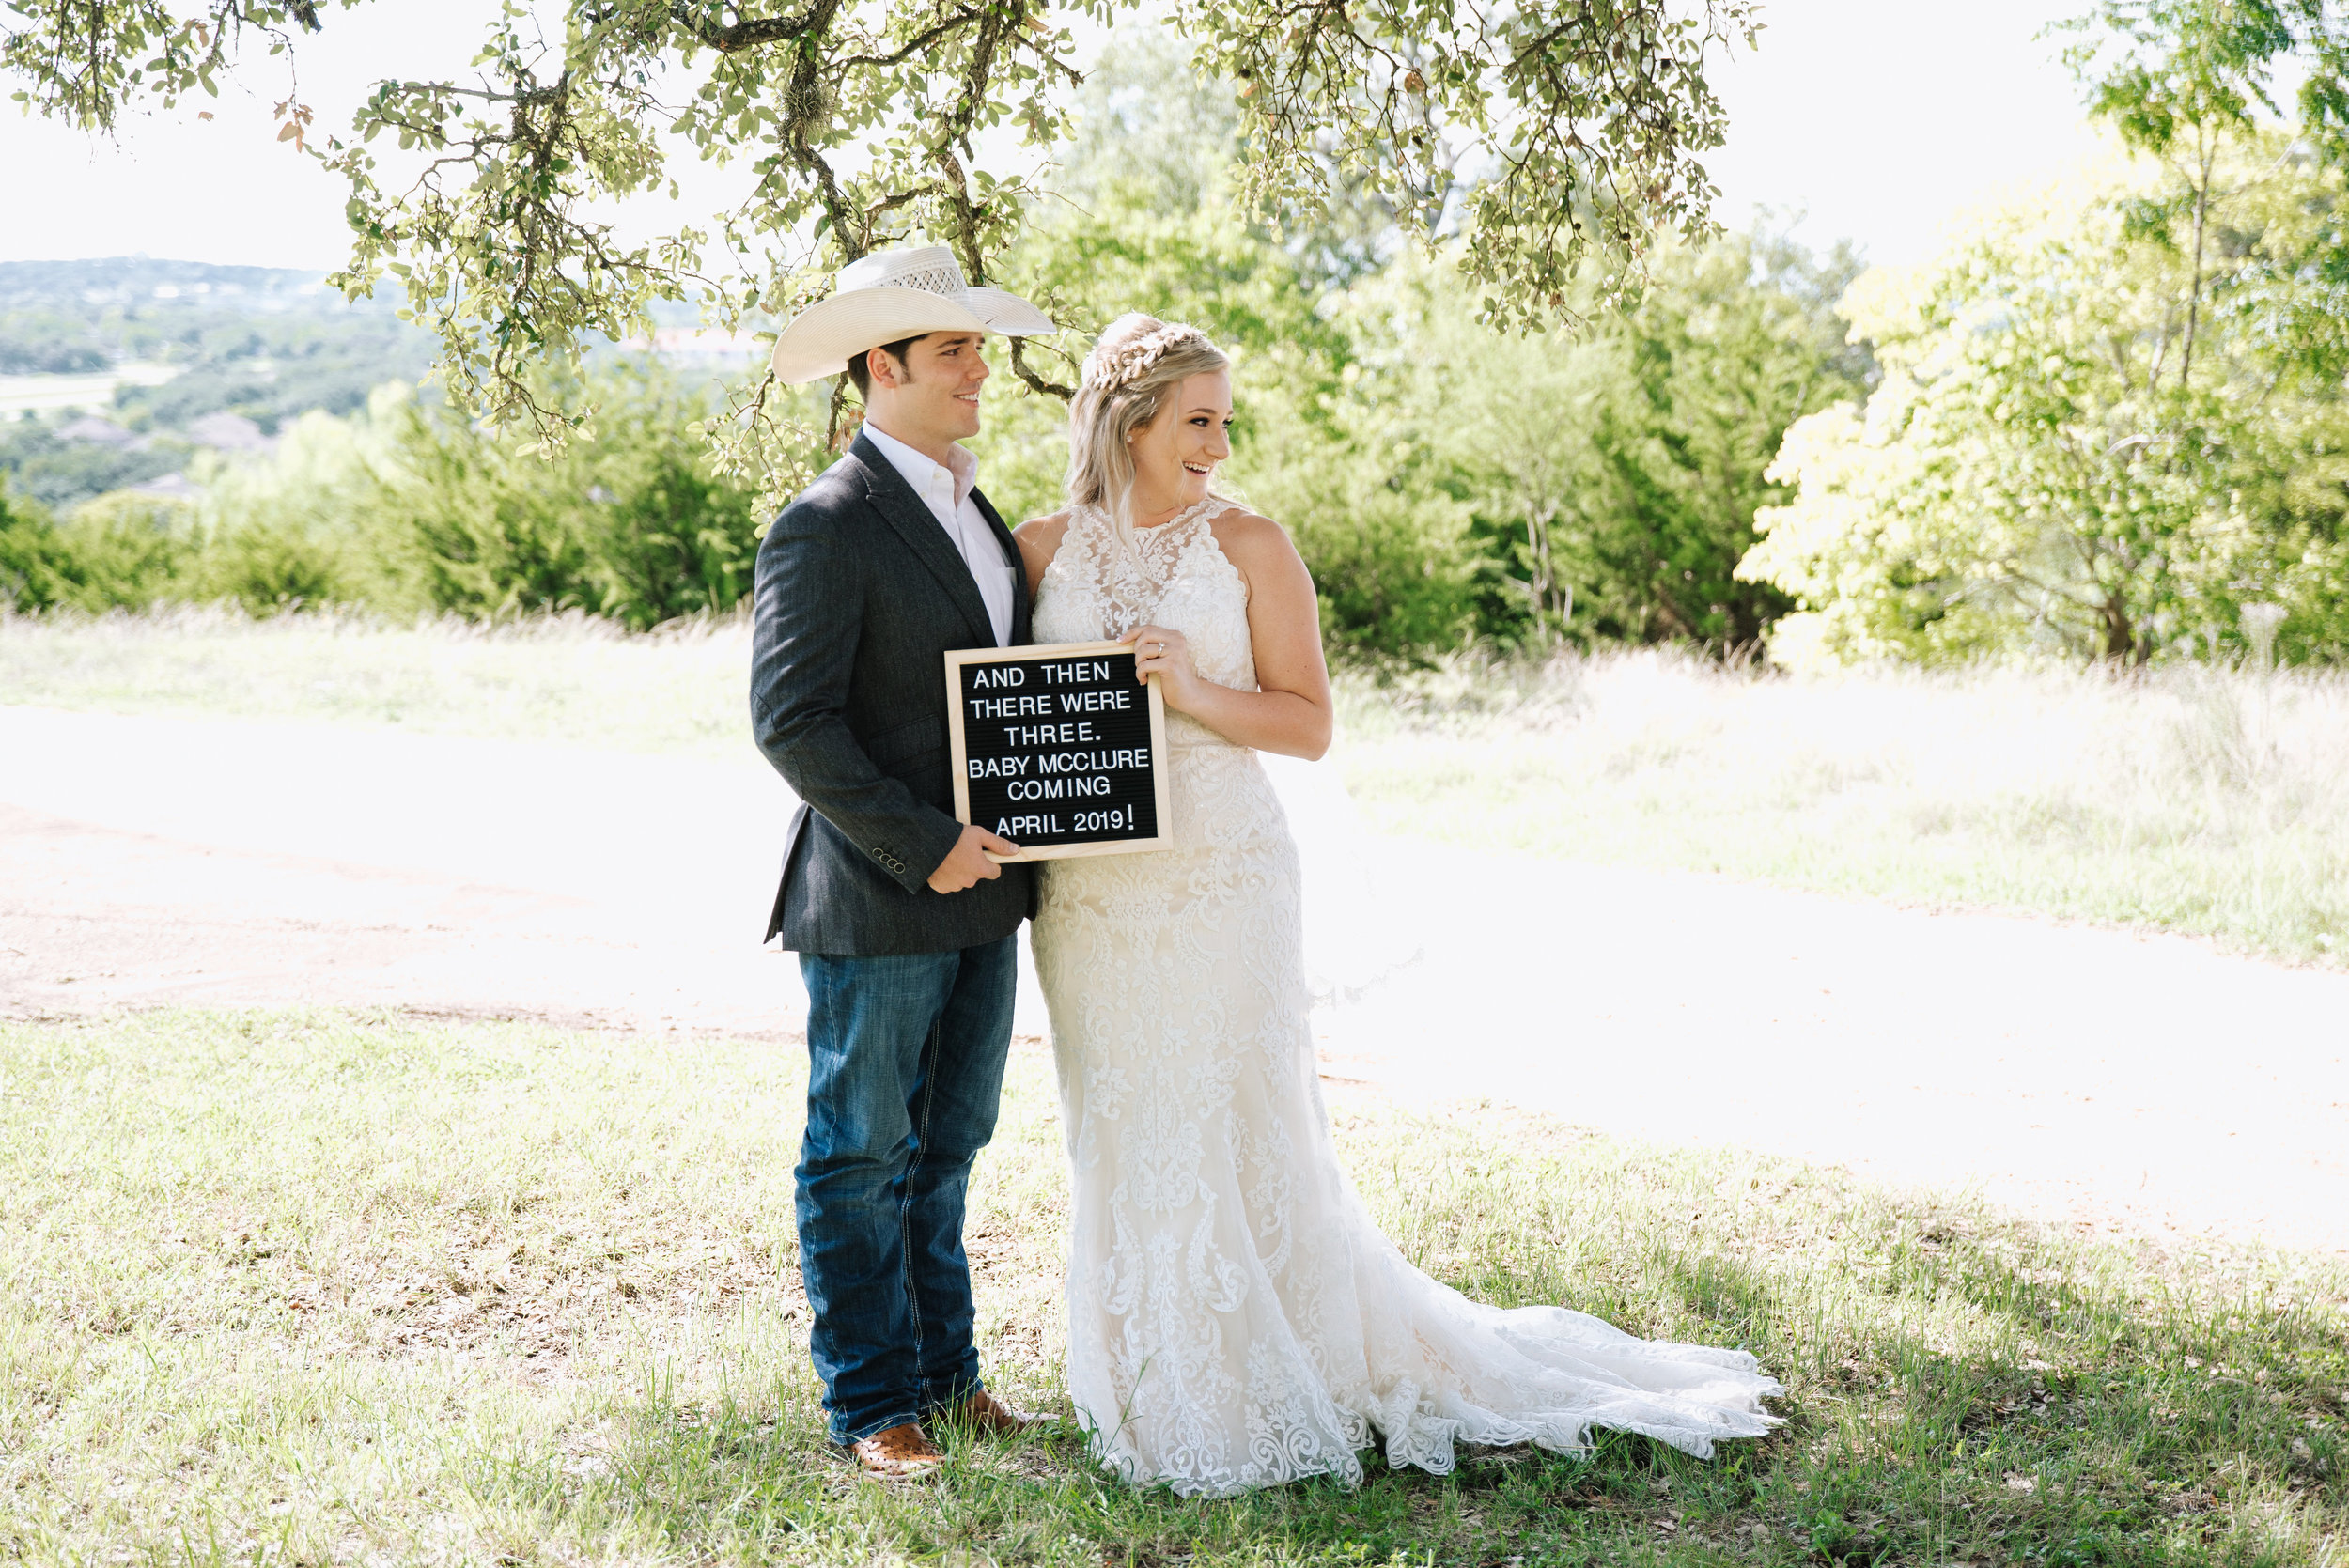 mcclure-boerne-wedding-announcement-sojourn-art-and-ink.jpg